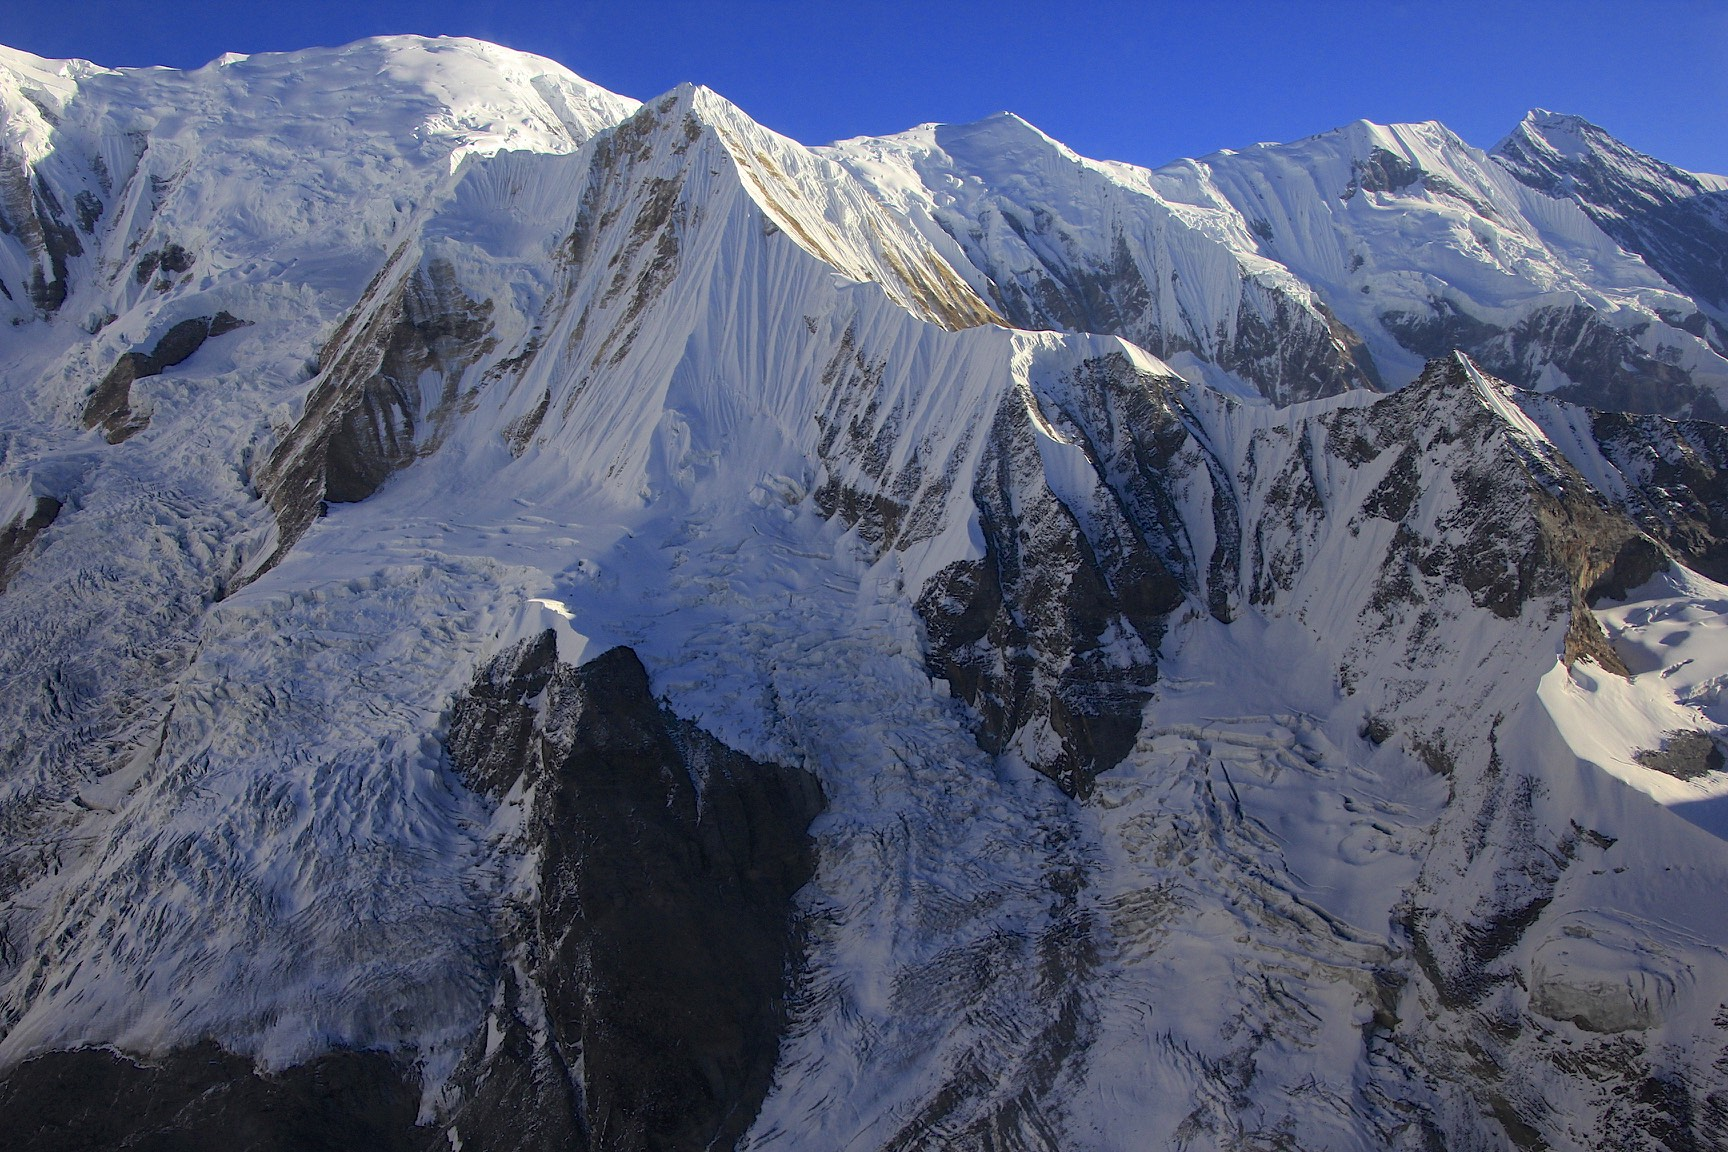 The Roc Noir. Gangapurna is on the far right. See the Mesocanto La Trip photos for the photos of these peaks from the other side! They do look very different.